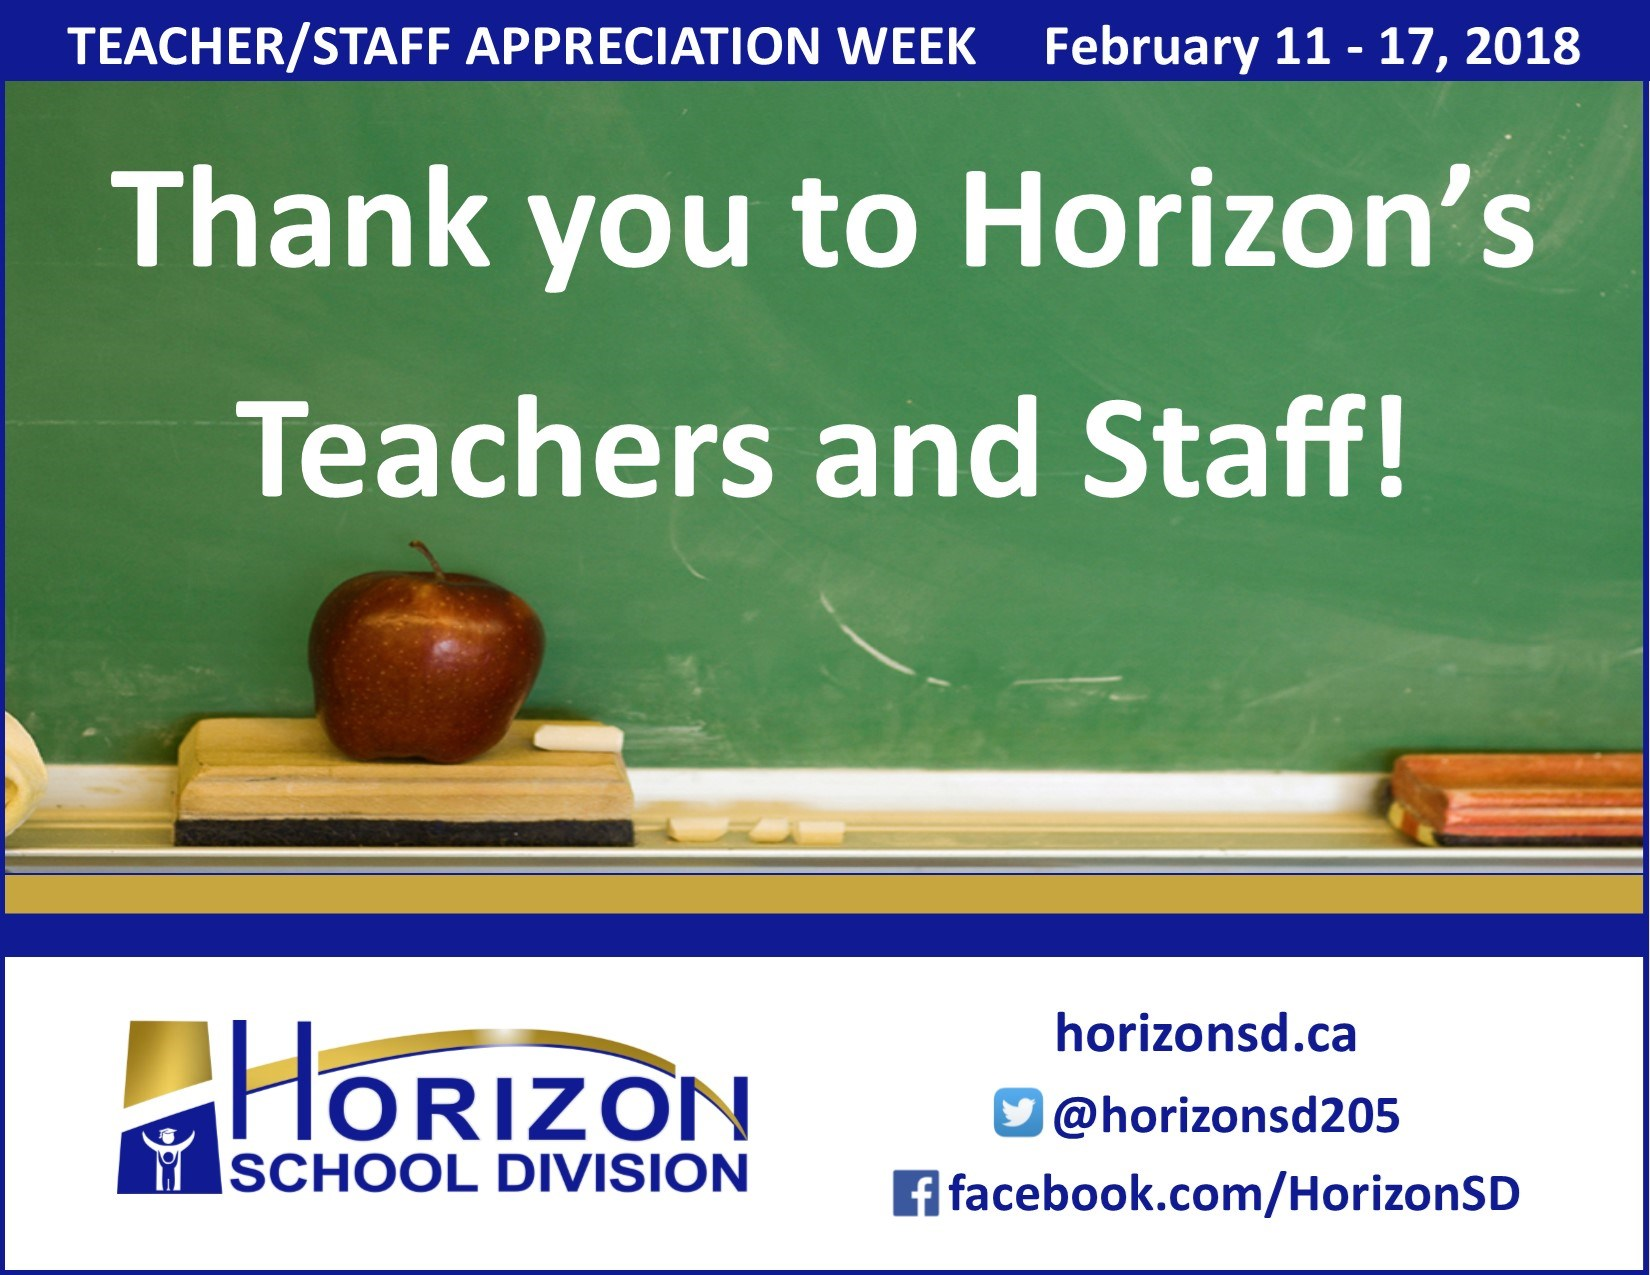 2018%20Teacher%20Staff%20Appreciation%20Week.jpg